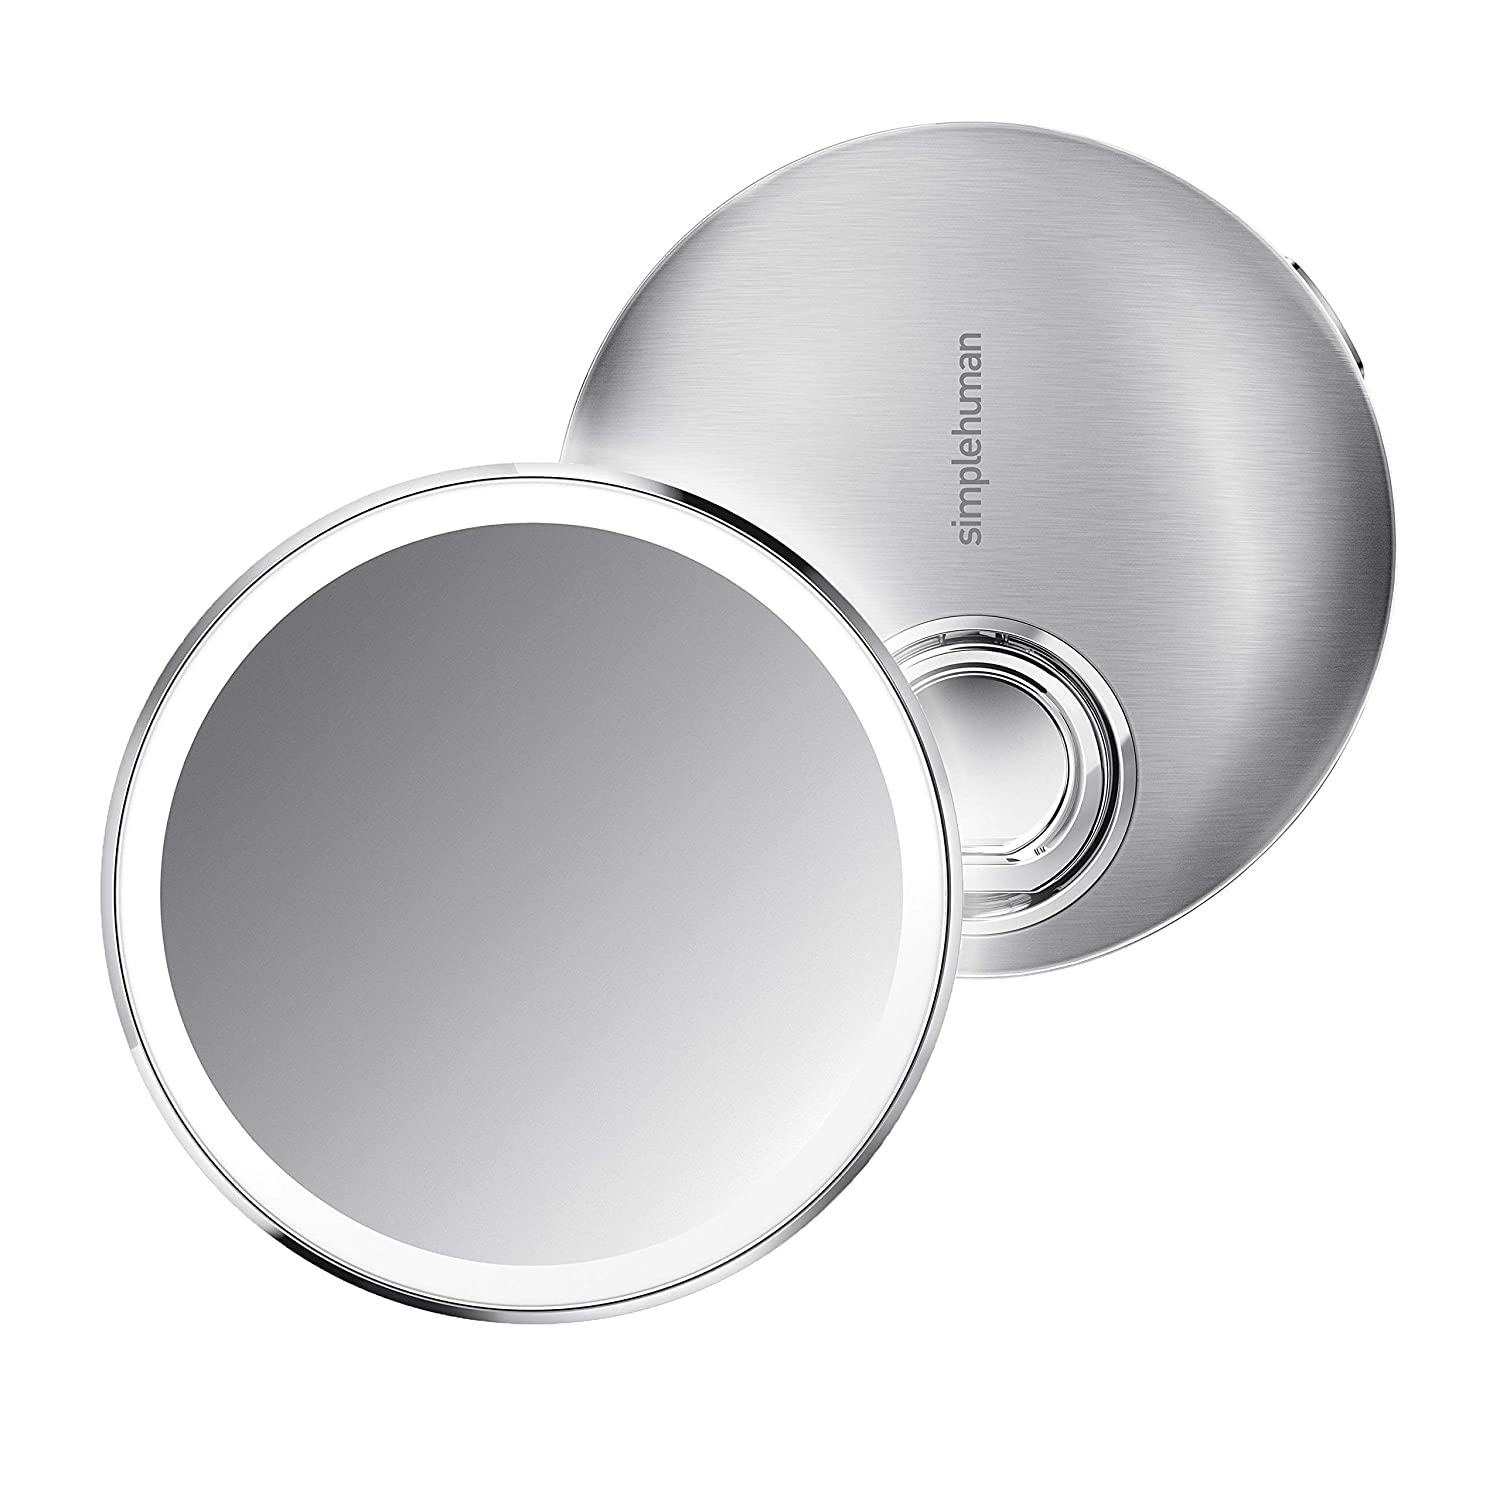 """simplehuman Sensor Mirror Compact 4"""" Round, 3X Magnification, Brushed Stainless Steel"""